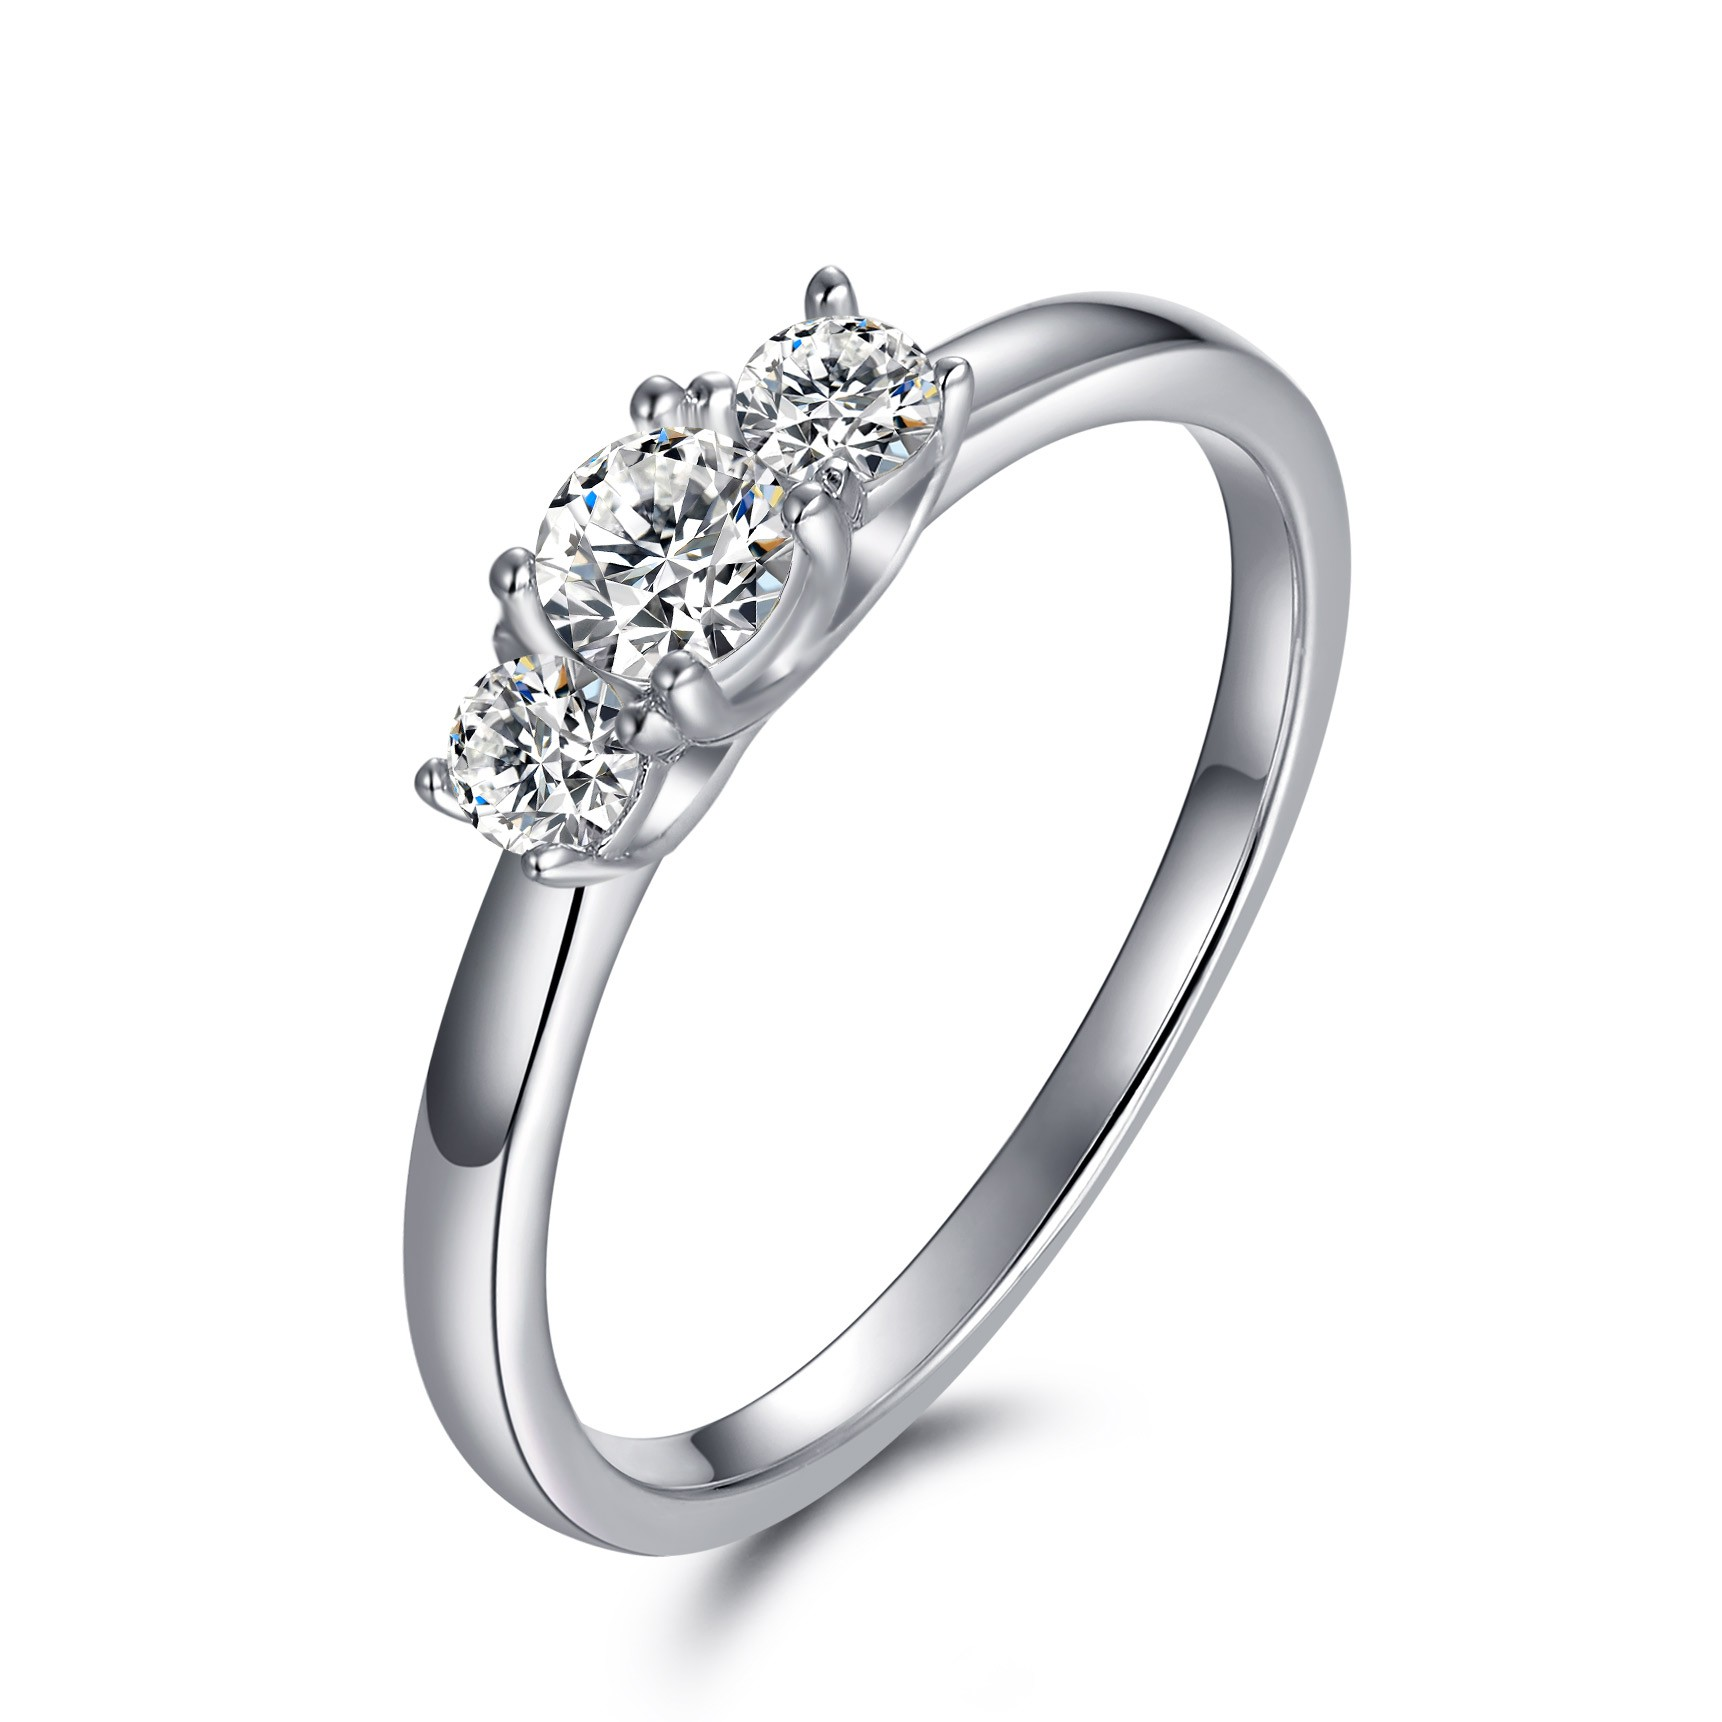 1/5CT Round Cut Gemstone Sterling Silver Engagement Ring